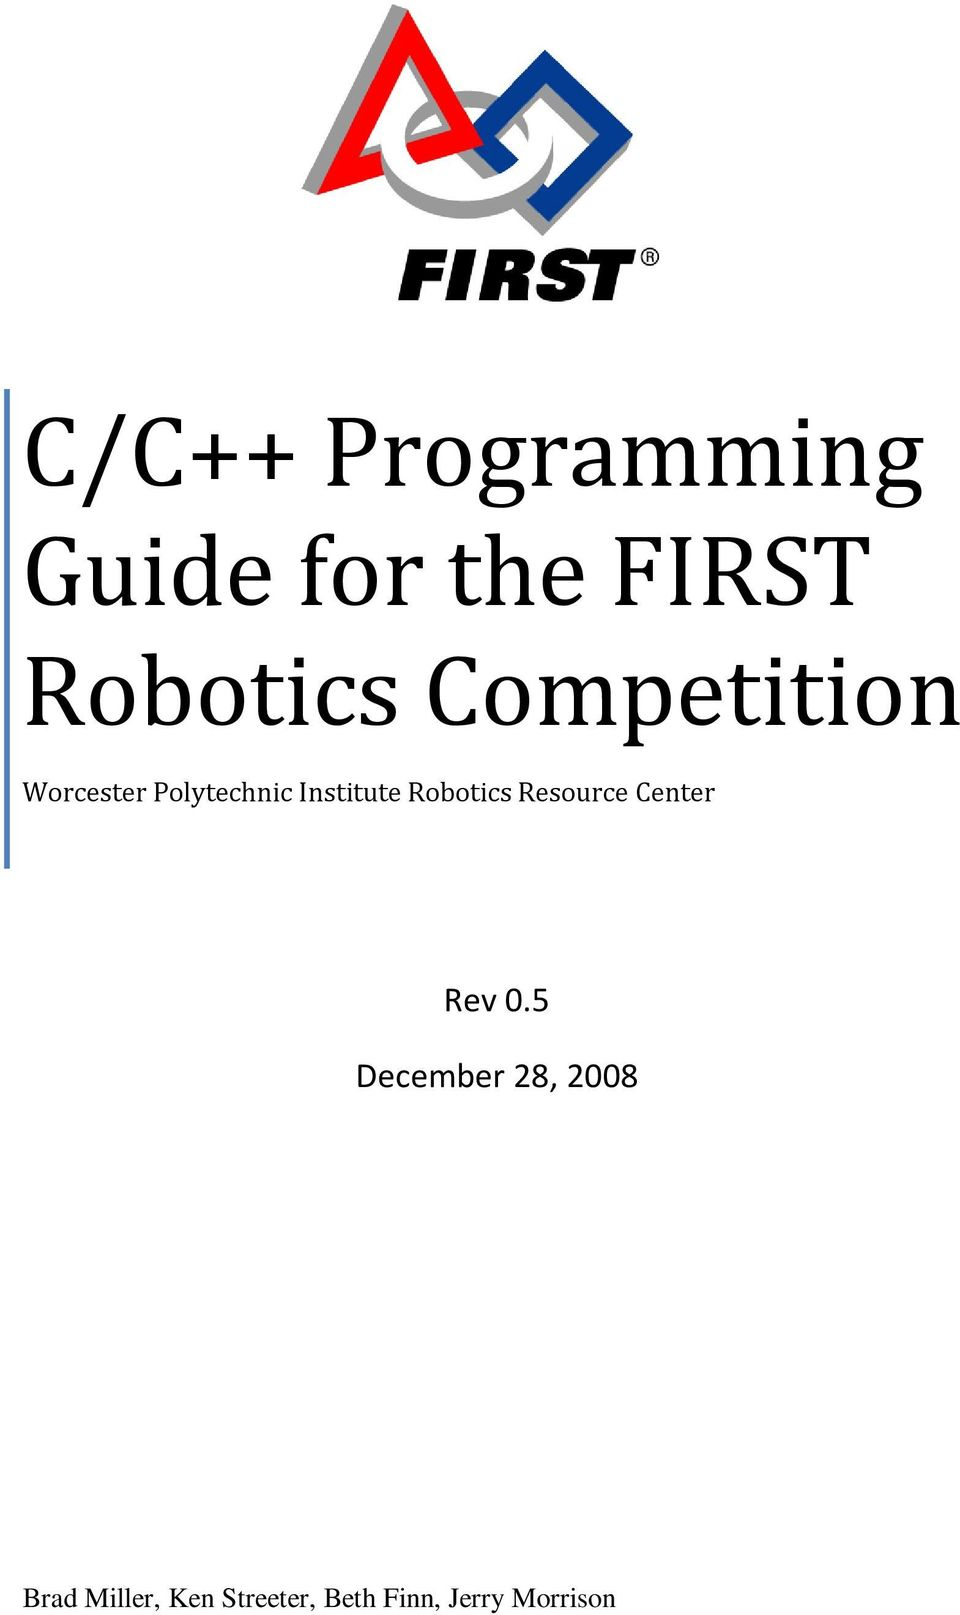 C/C++ Programming Guide for the FIRST Robotics Competition - PDF